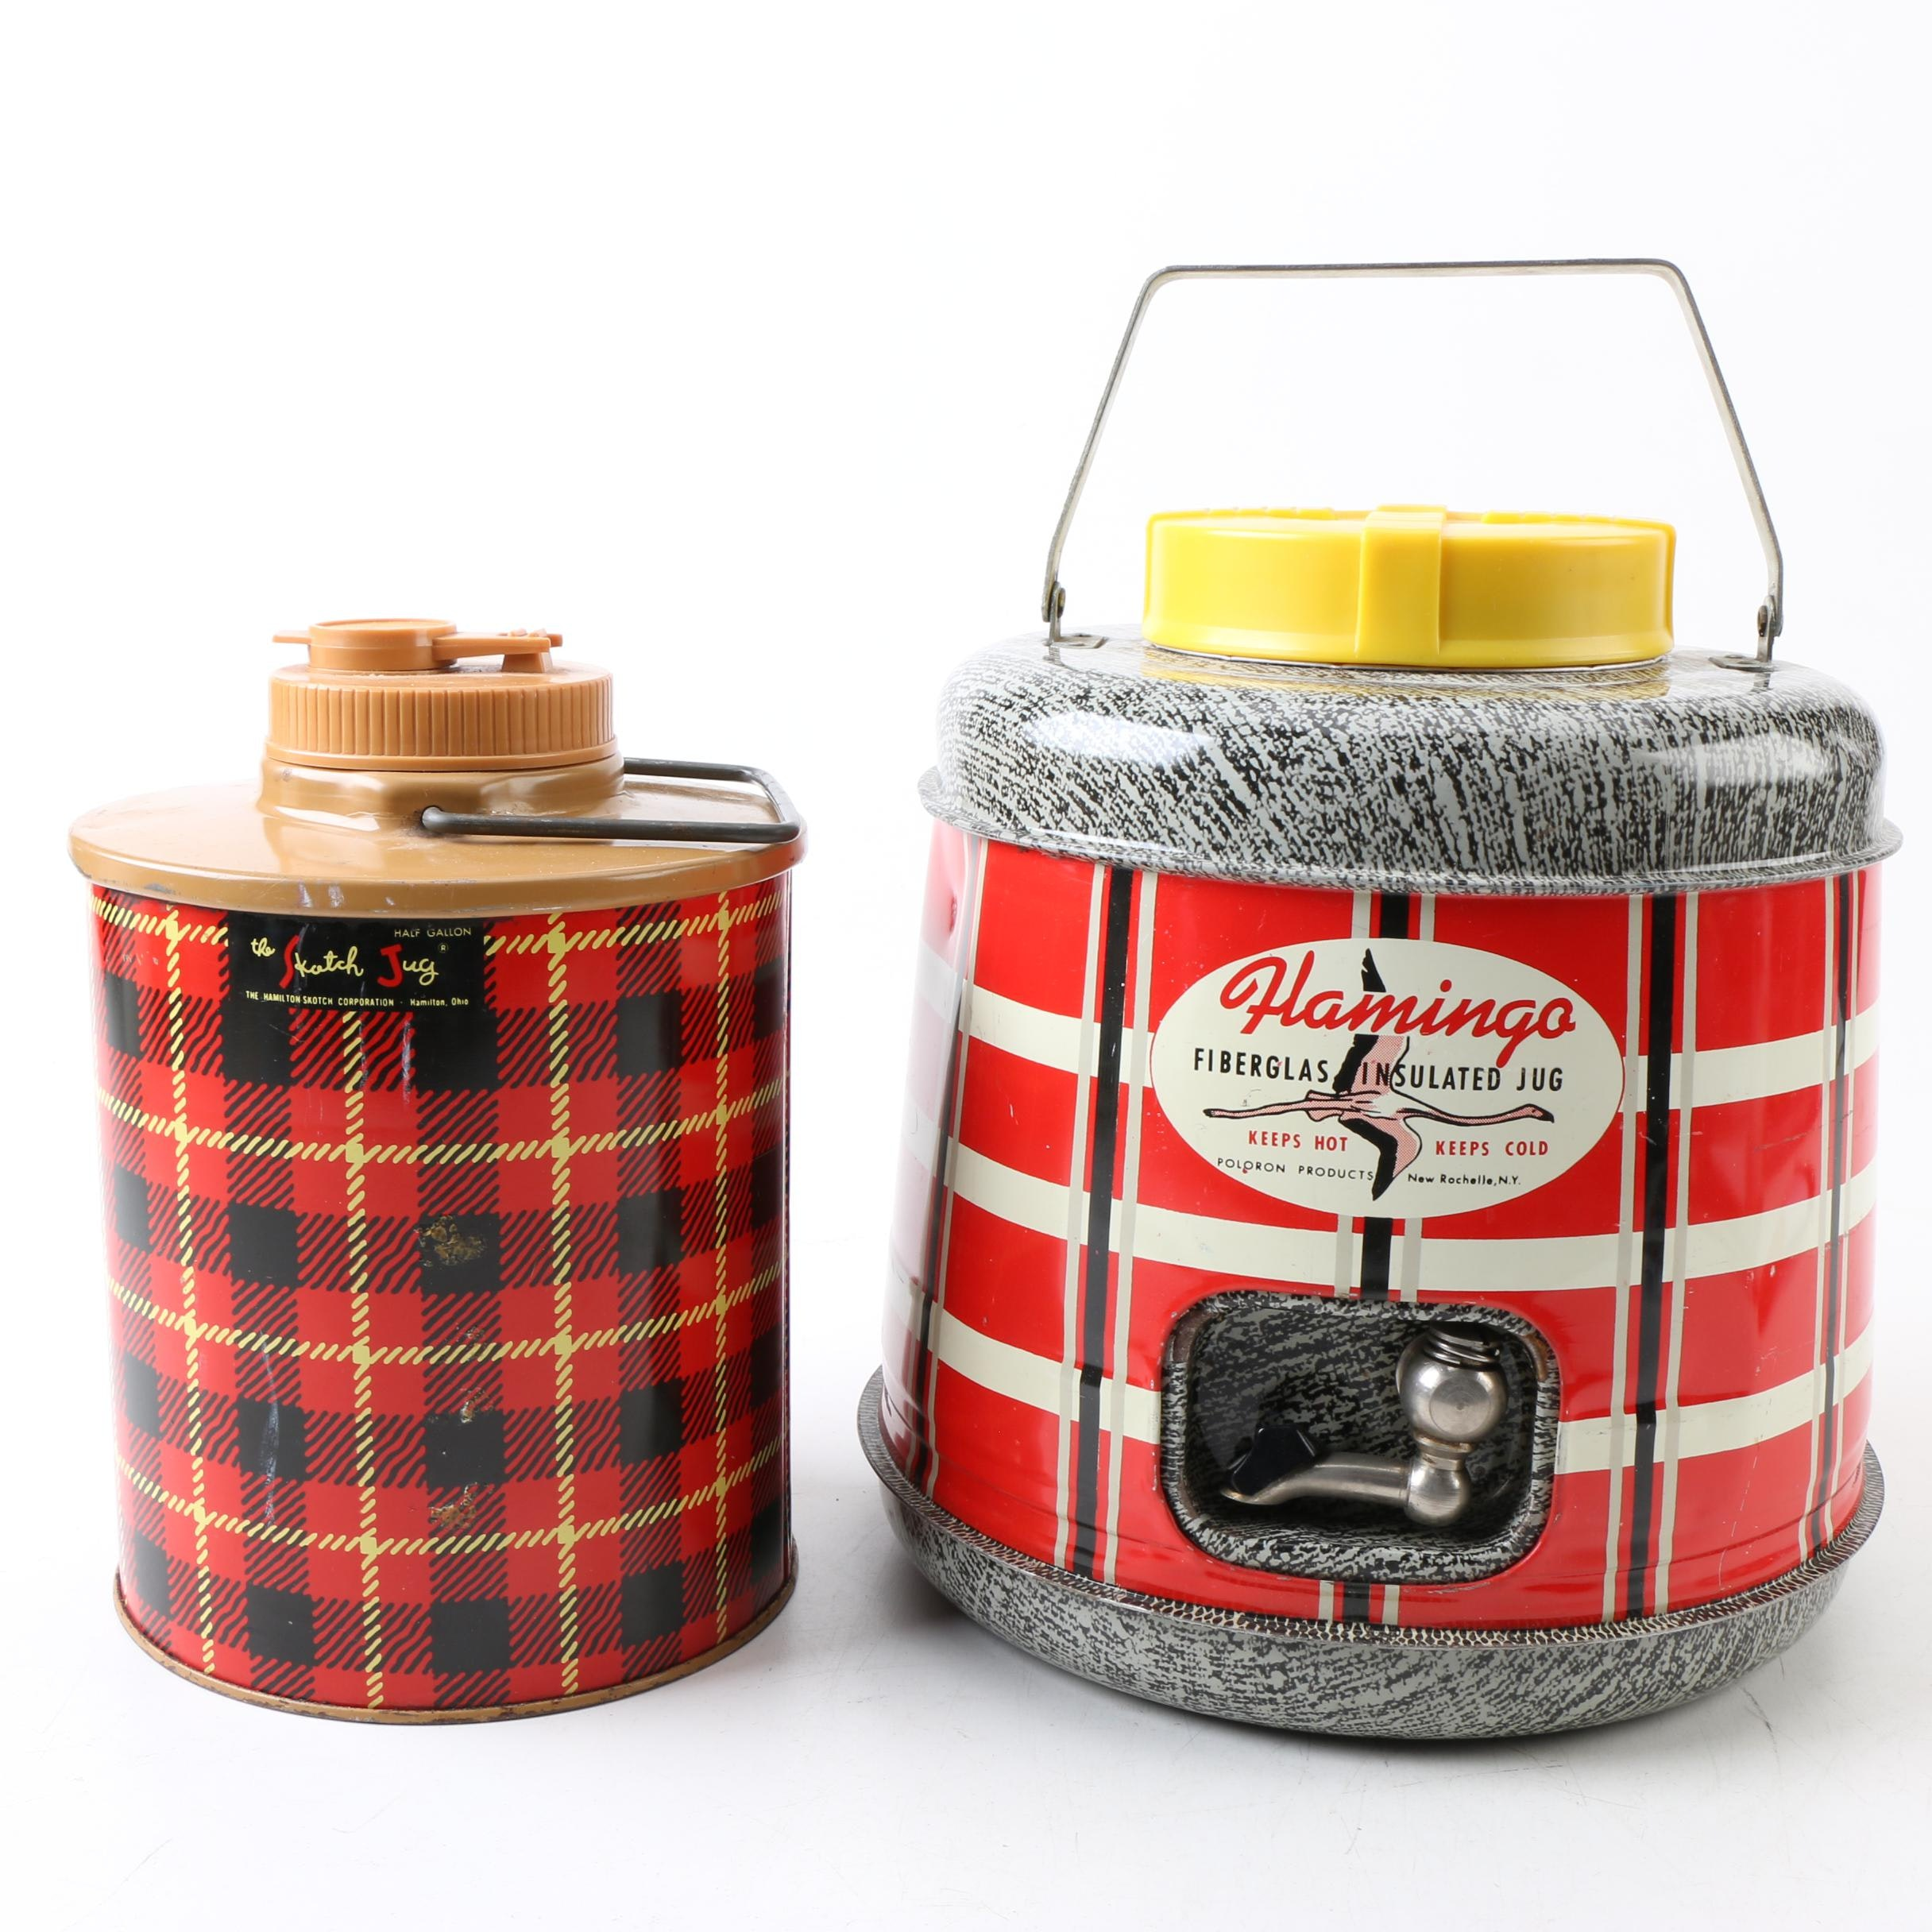 Mid Century Modern Insulated Camping Jugs